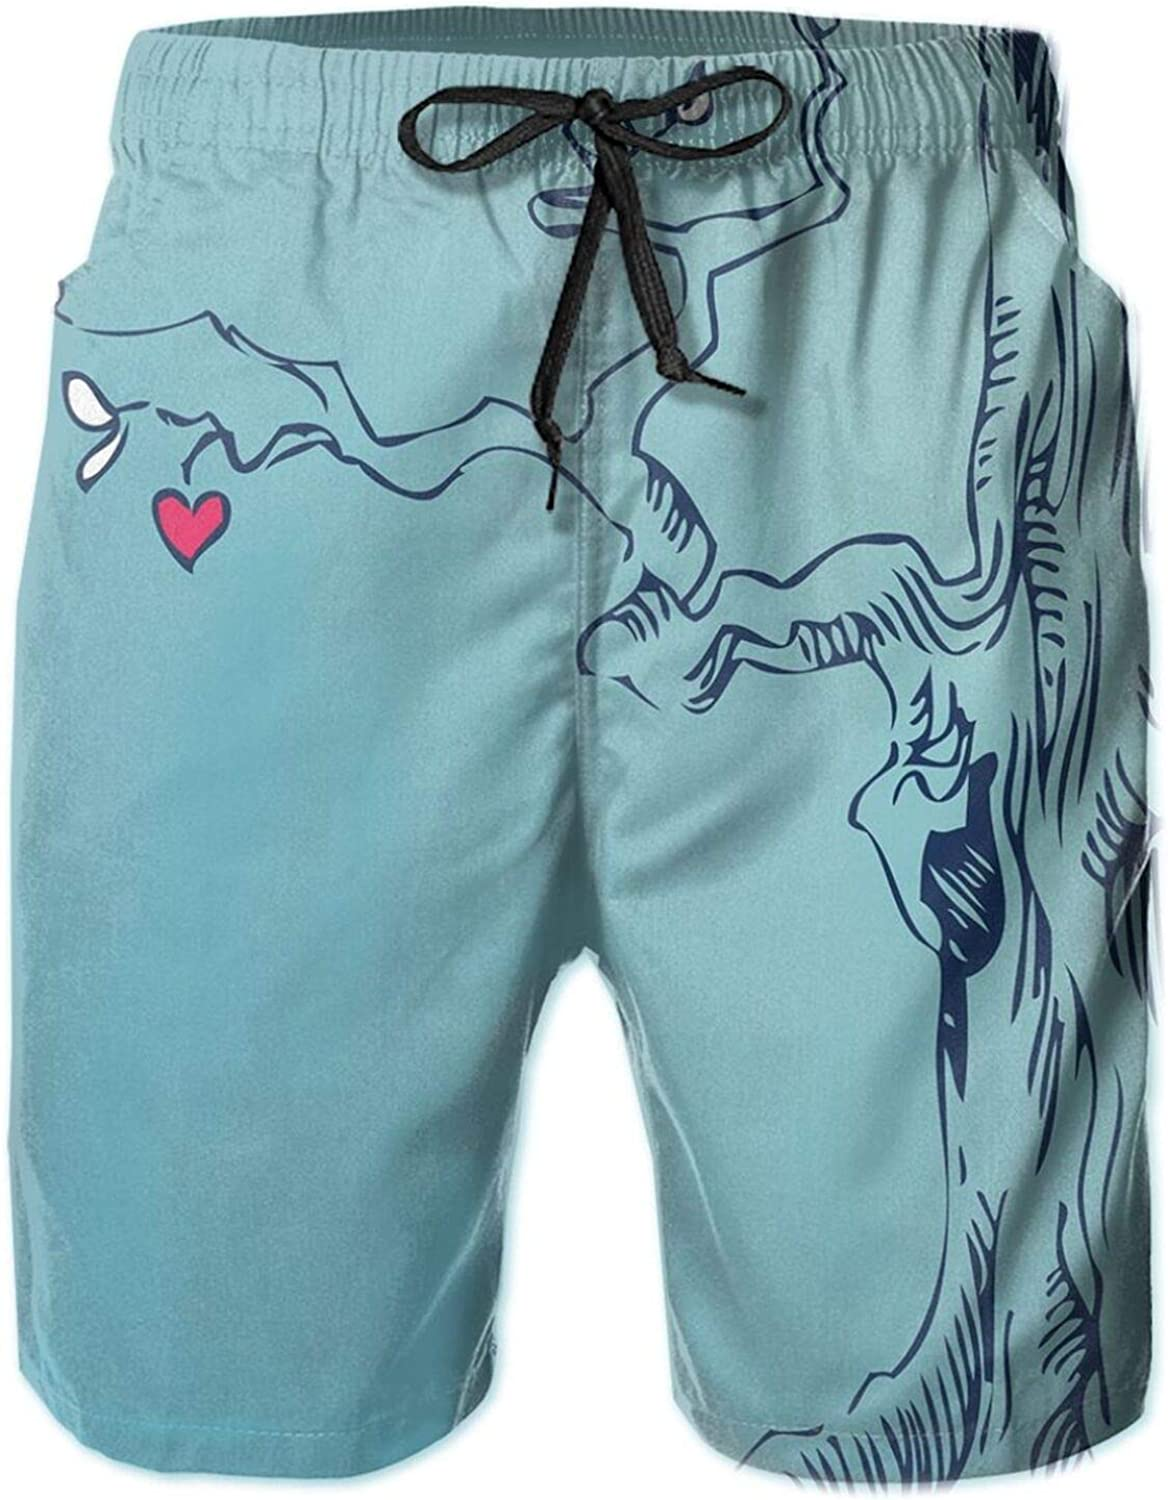 Hand Drawn Tree with Hearts and Leaves Branches Sketch Style Mother Earth Art Print Mens Swim Shorts Casual Workout Short Pants Drawstring Beach Shorts,M